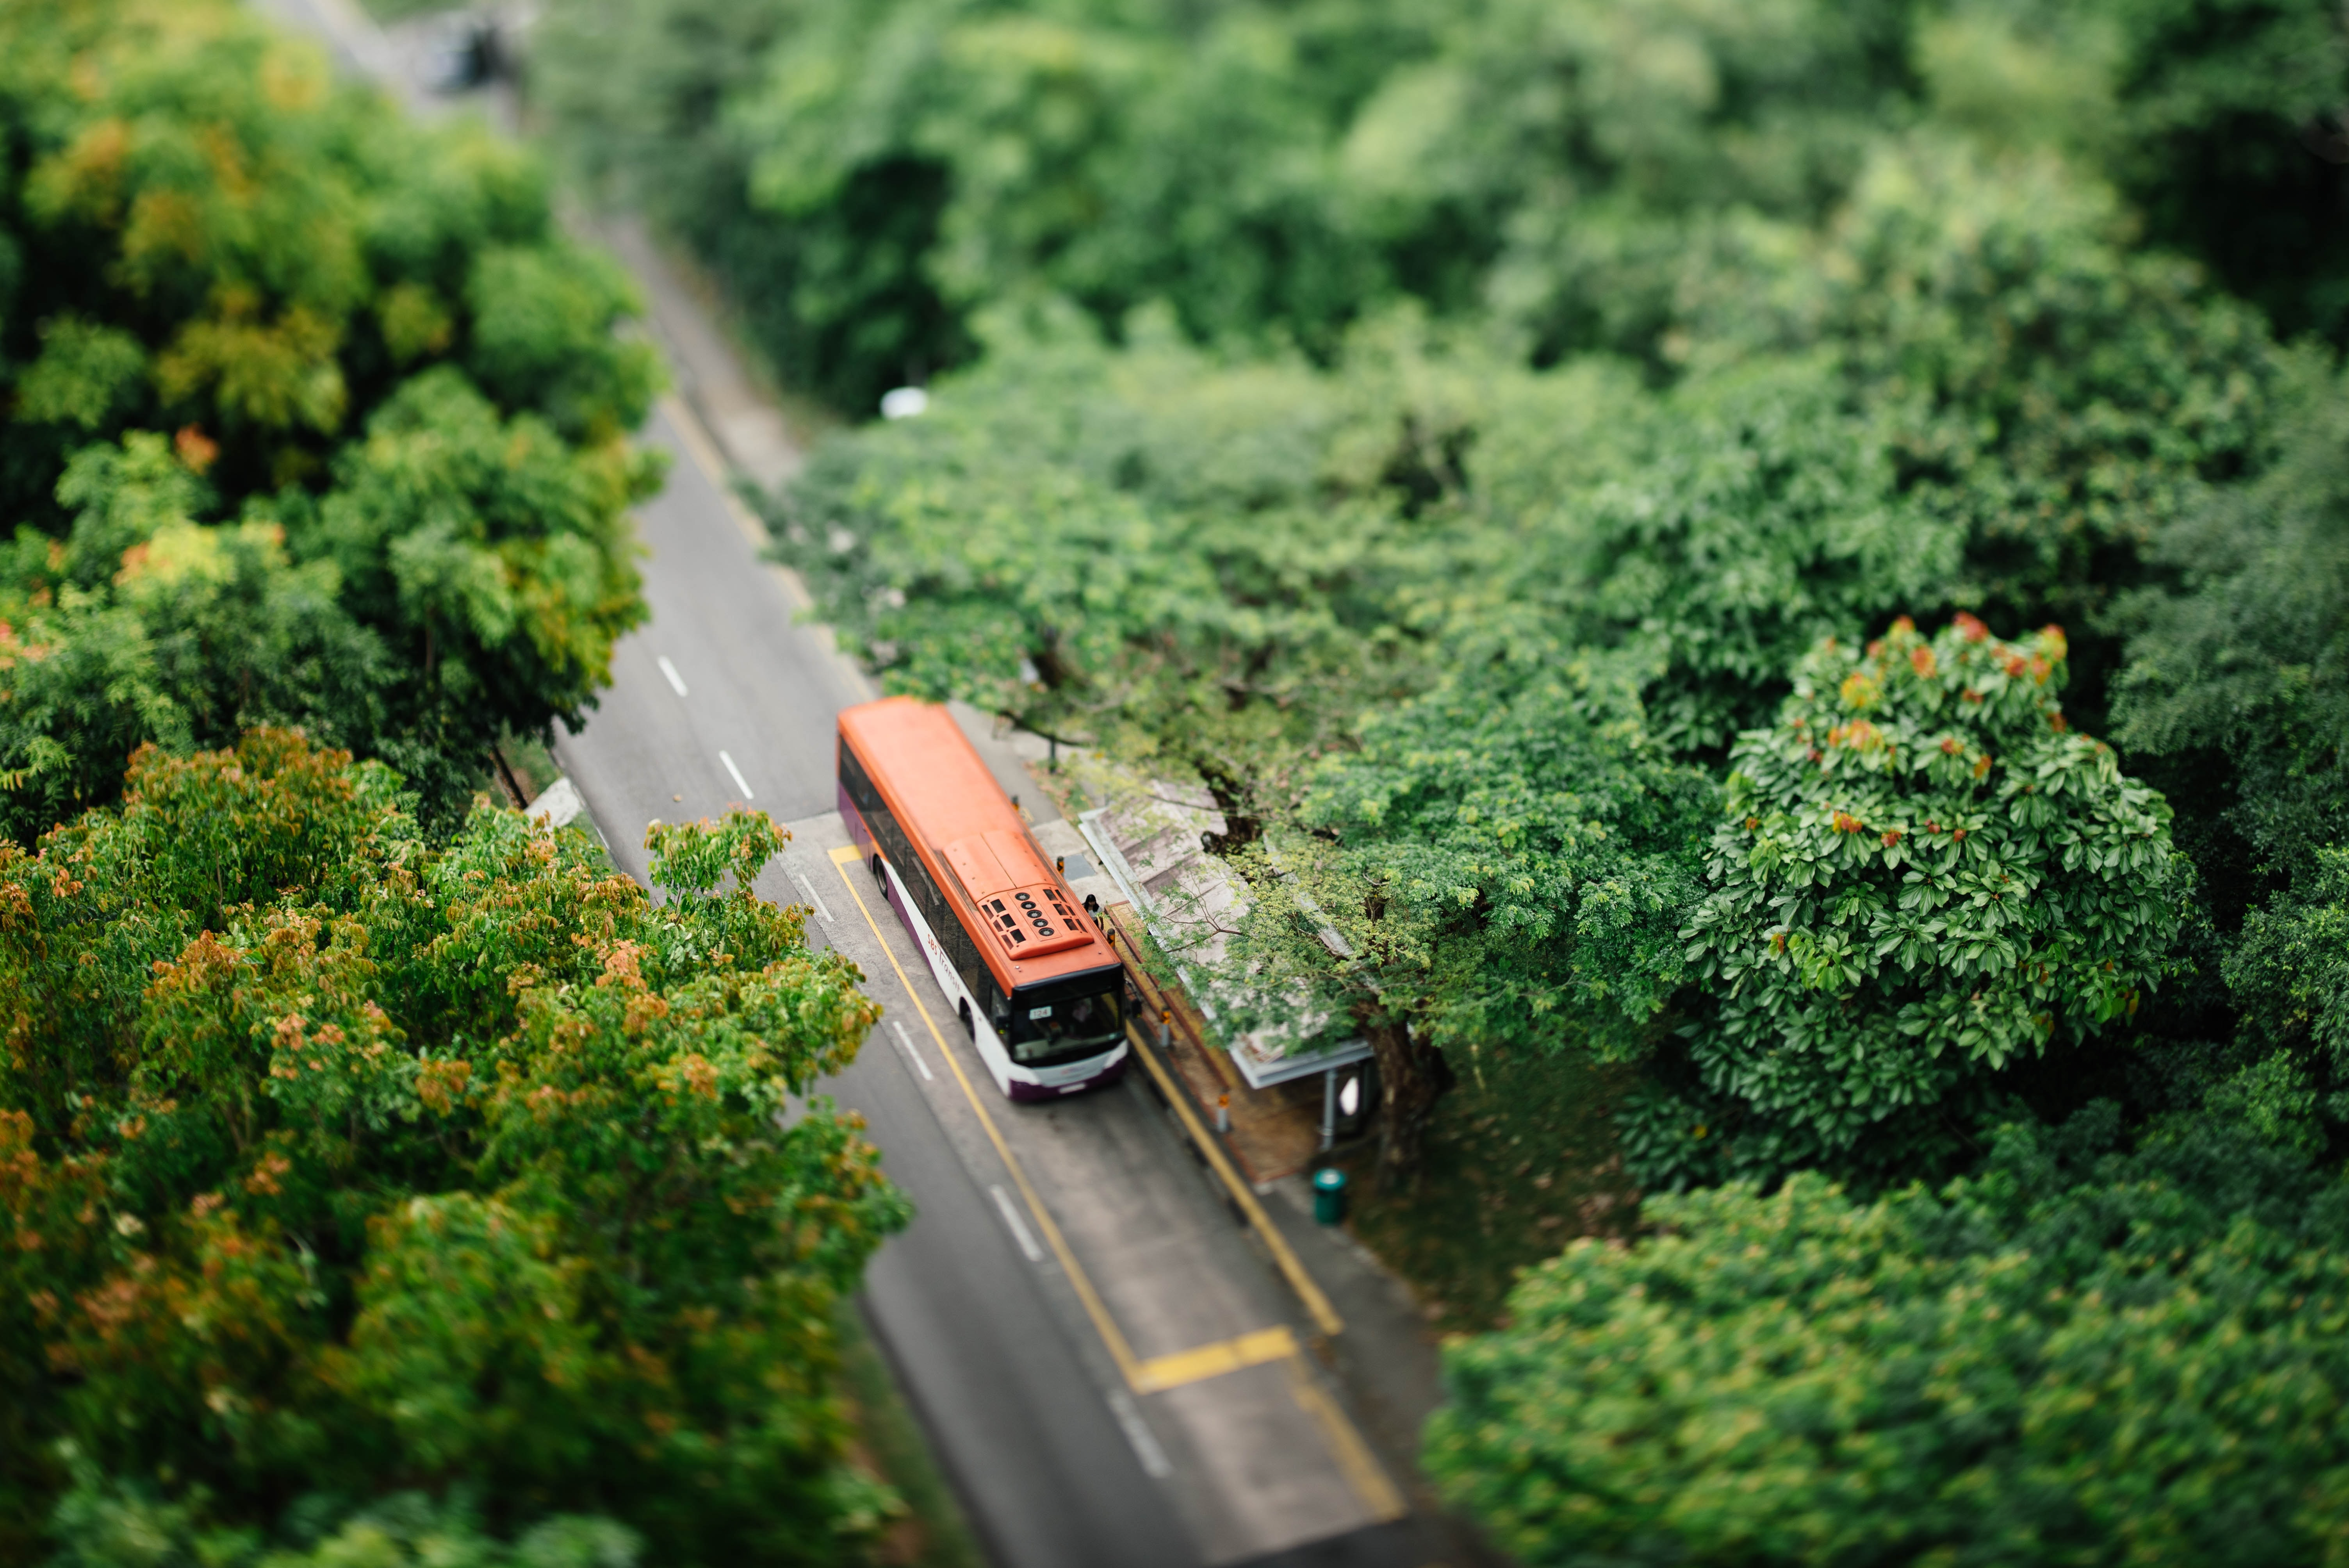 A drone shot of a bus at a stop on a tree-lined road